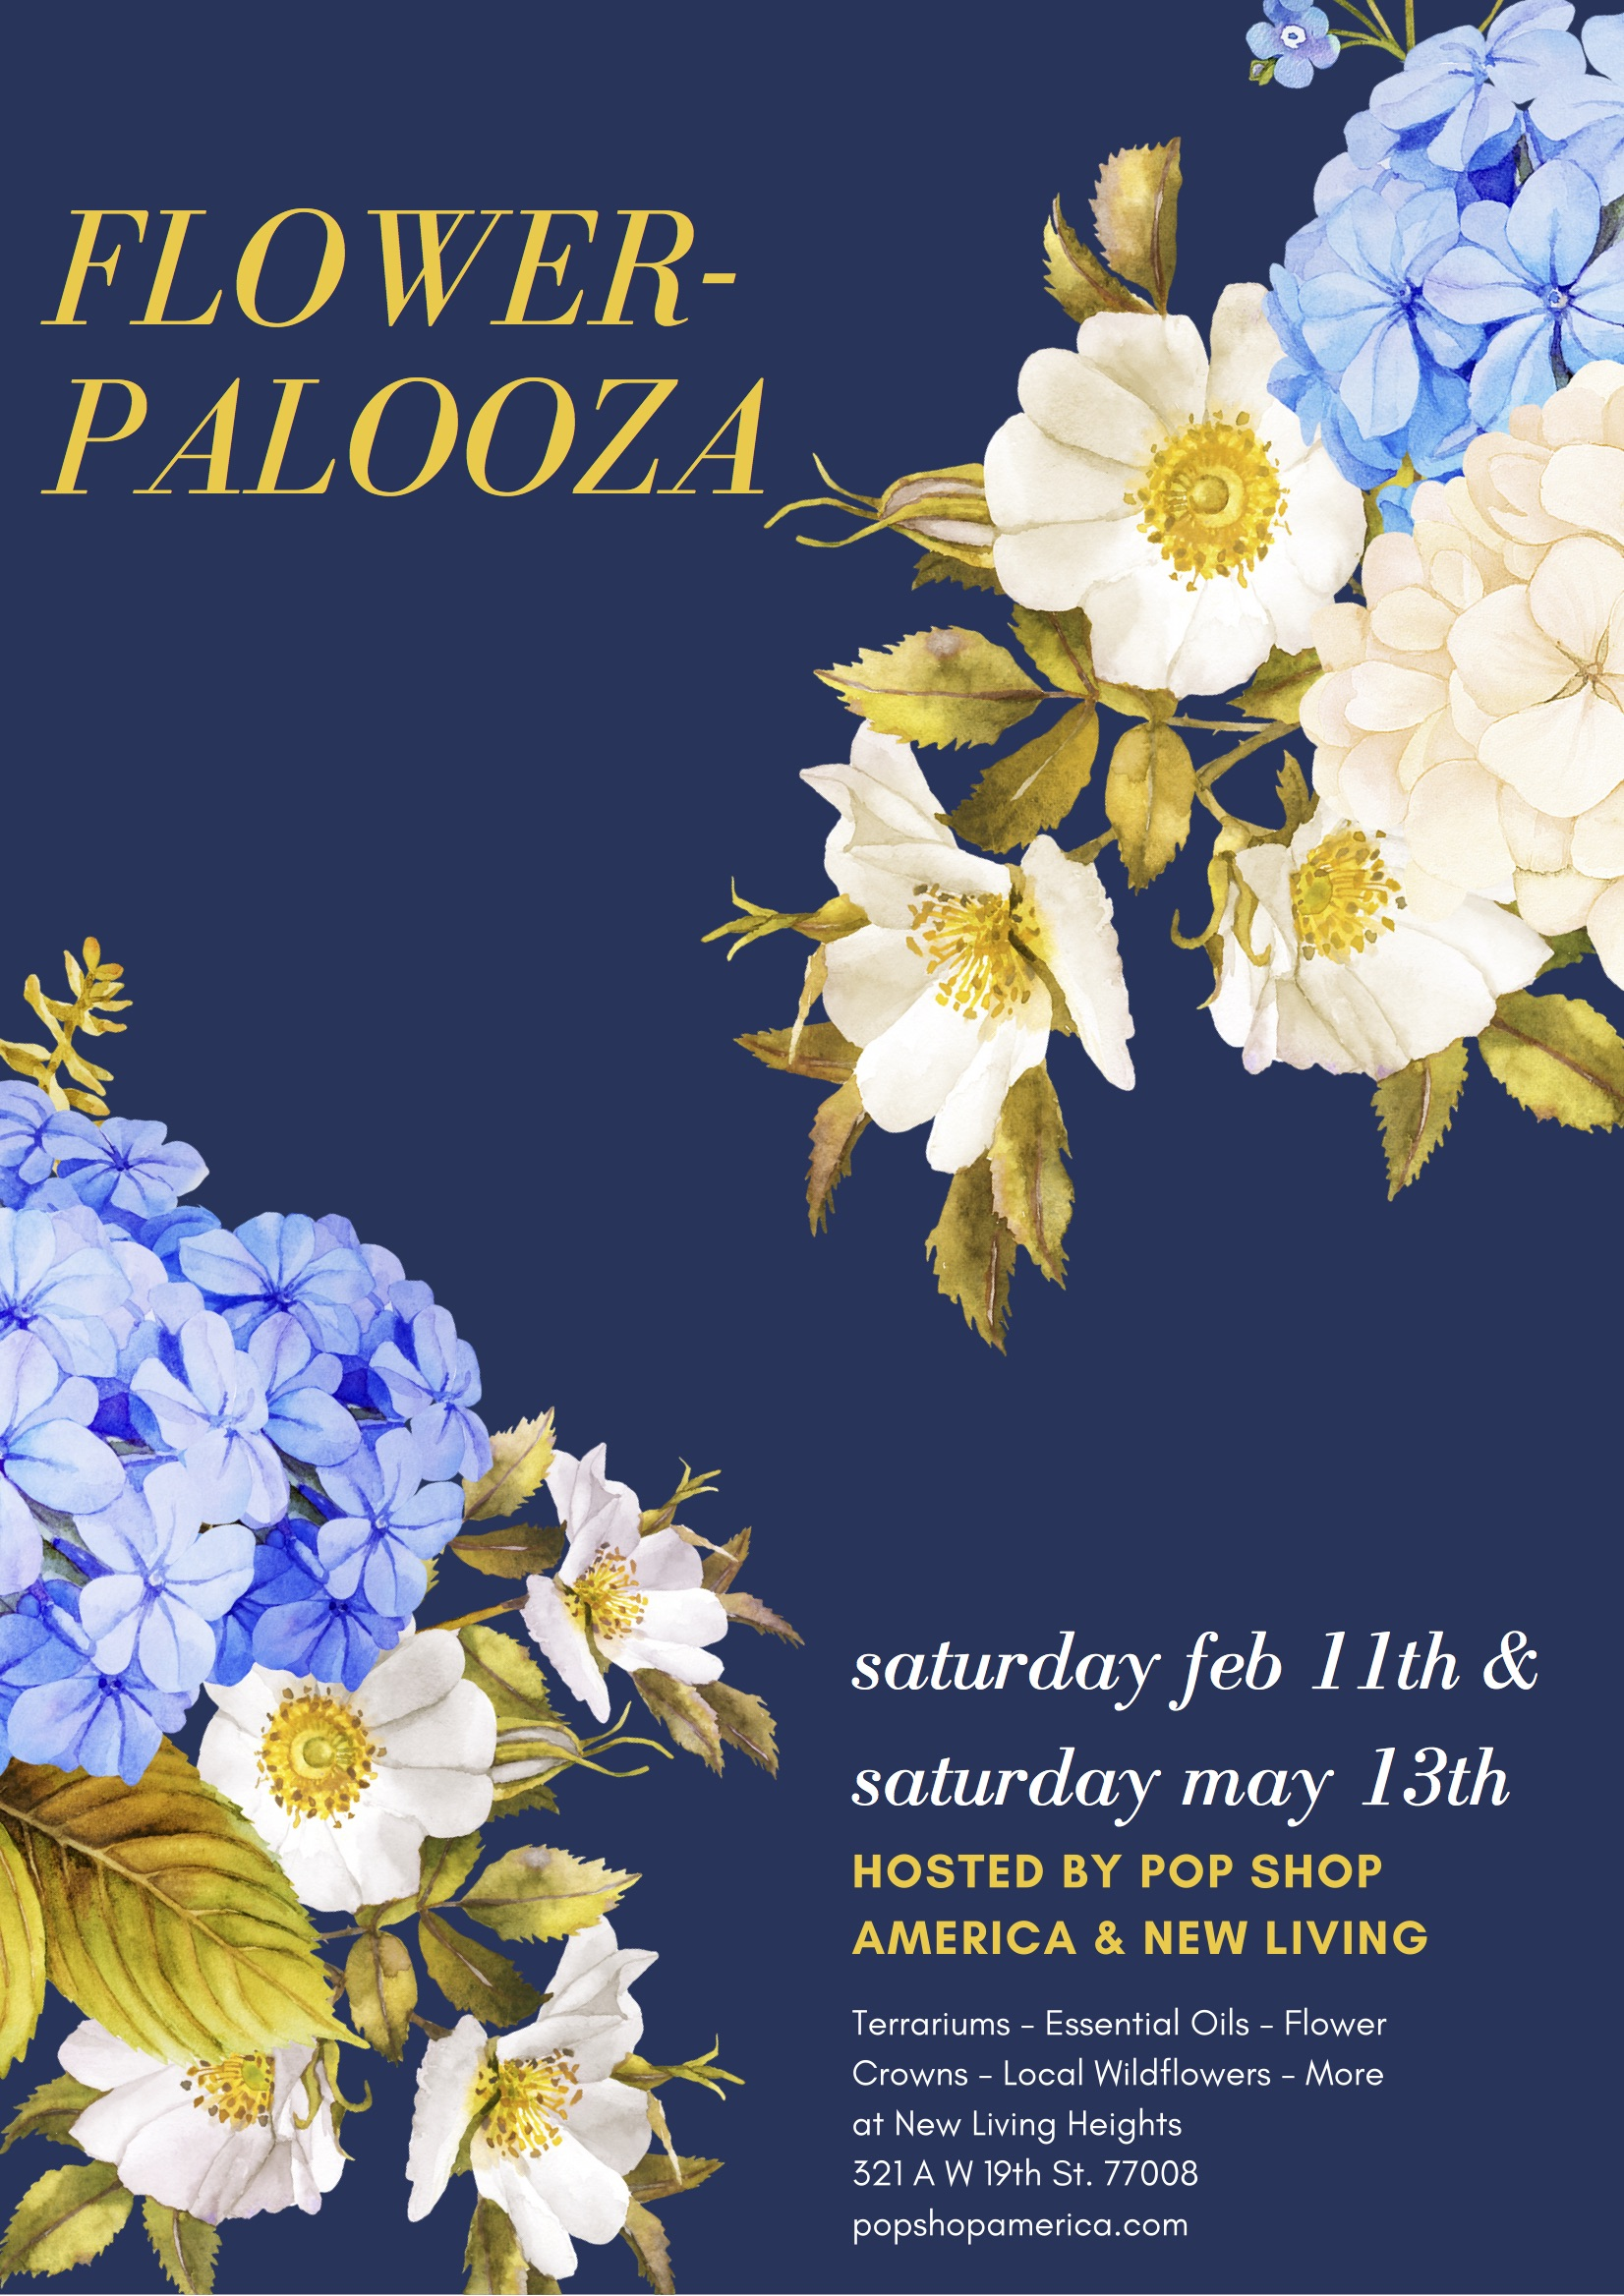 flowerpalooza houston valentine's event